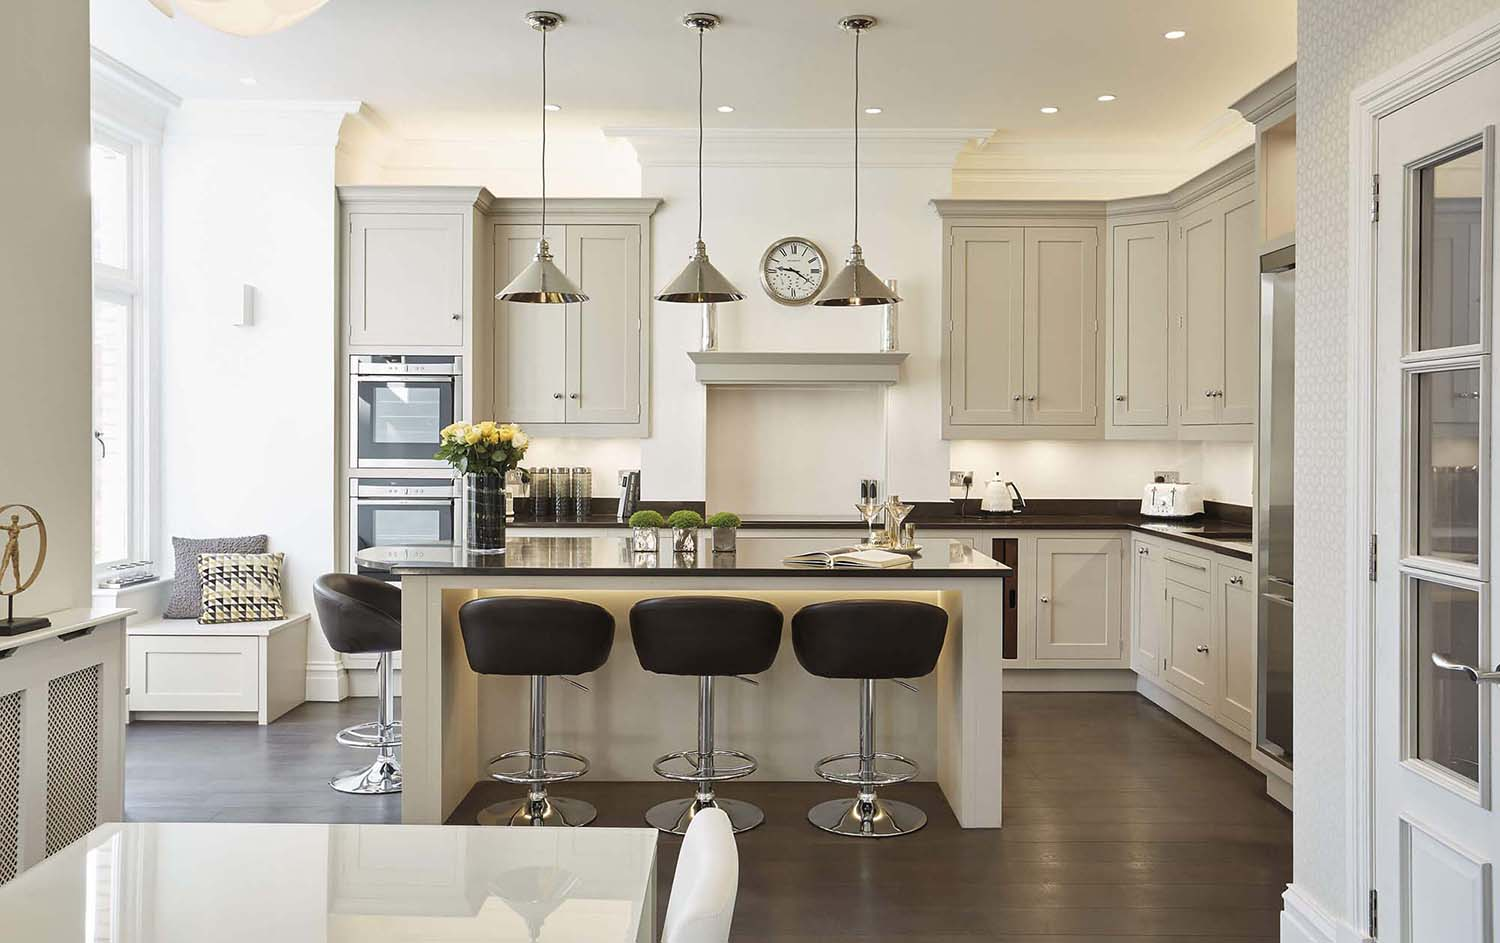 light gray cabinets with marble backsplash and black granite countertops